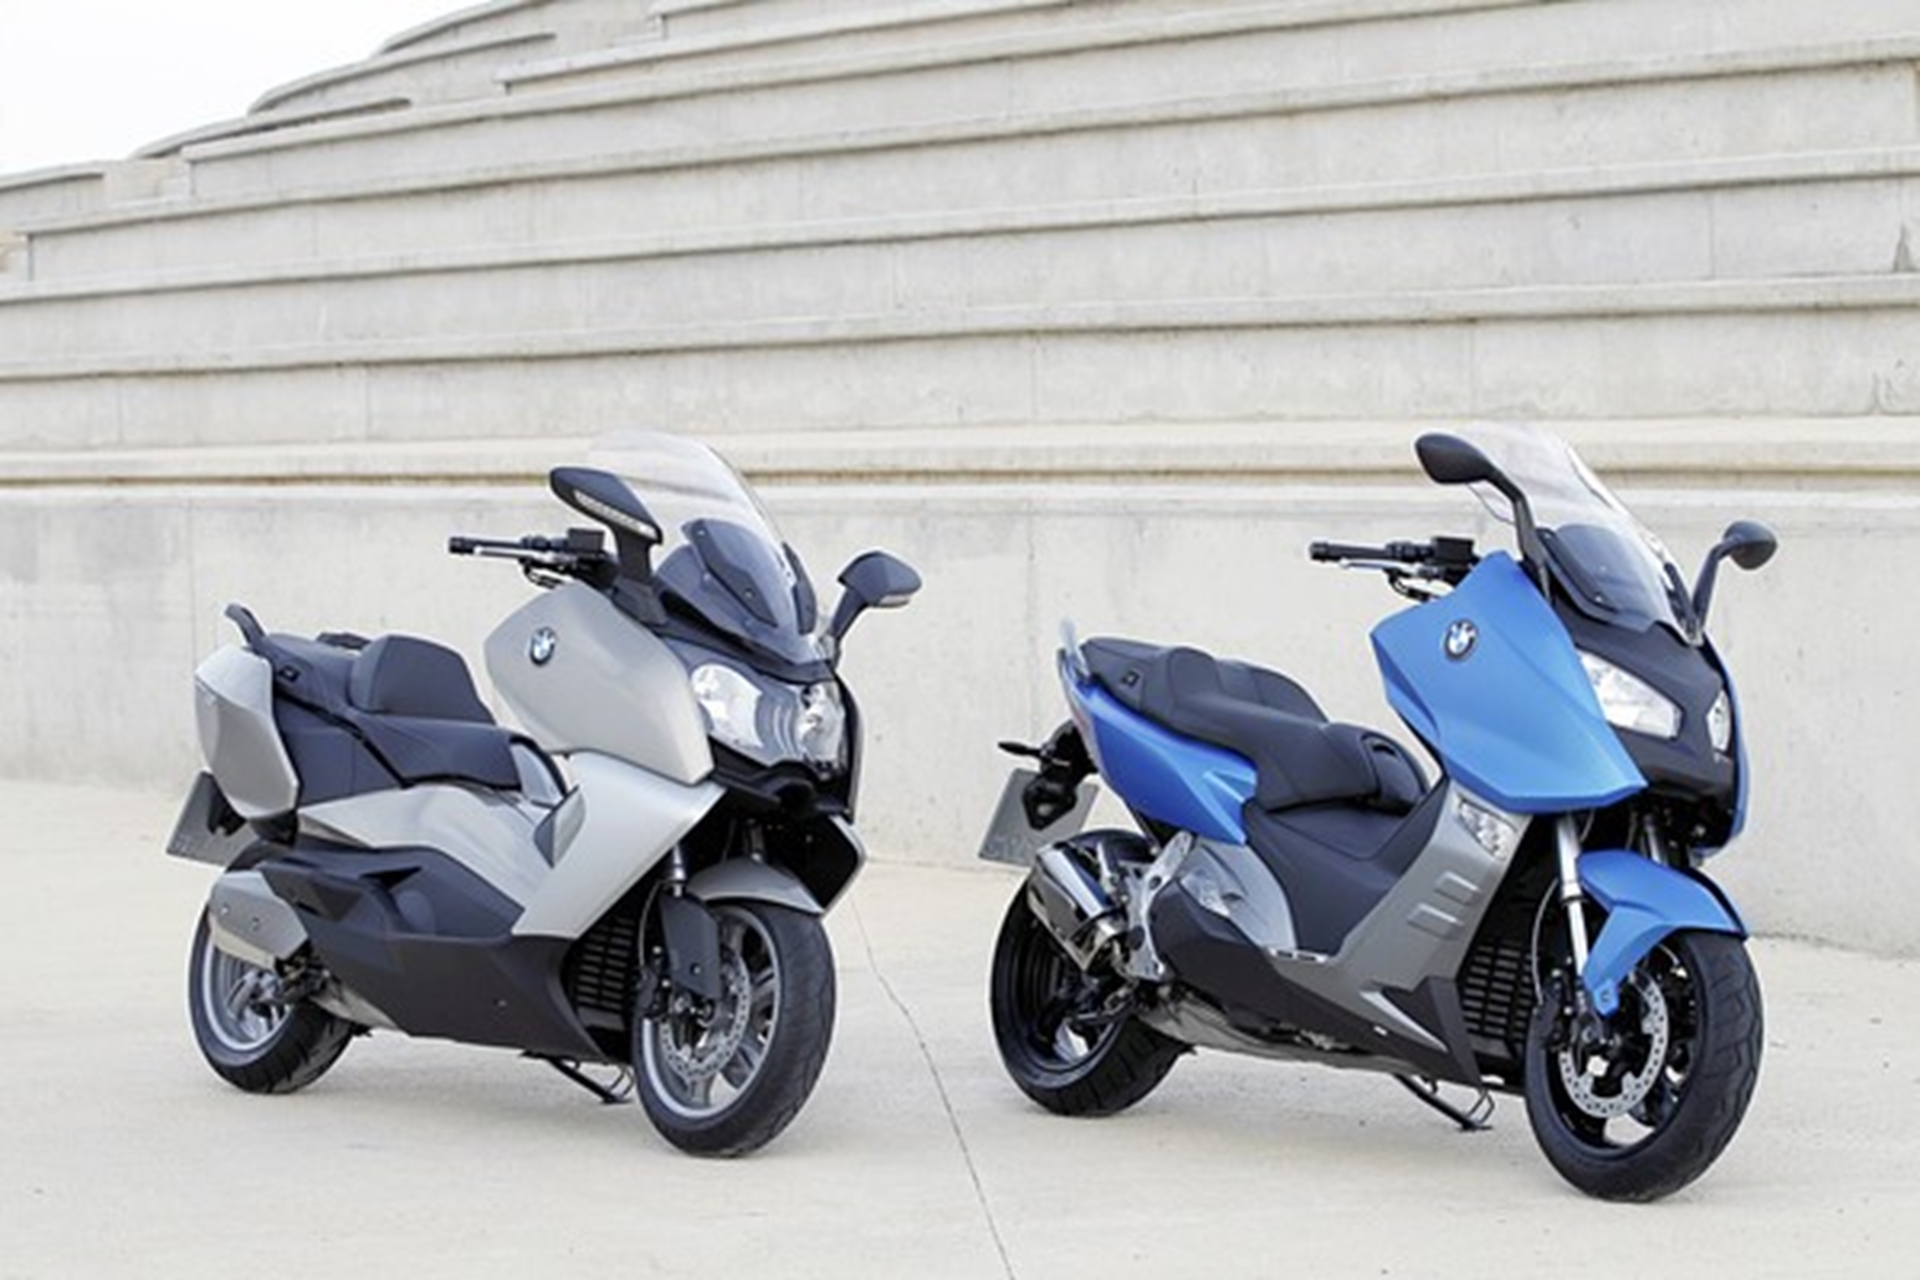 BMW C 600 and C 650 Sport